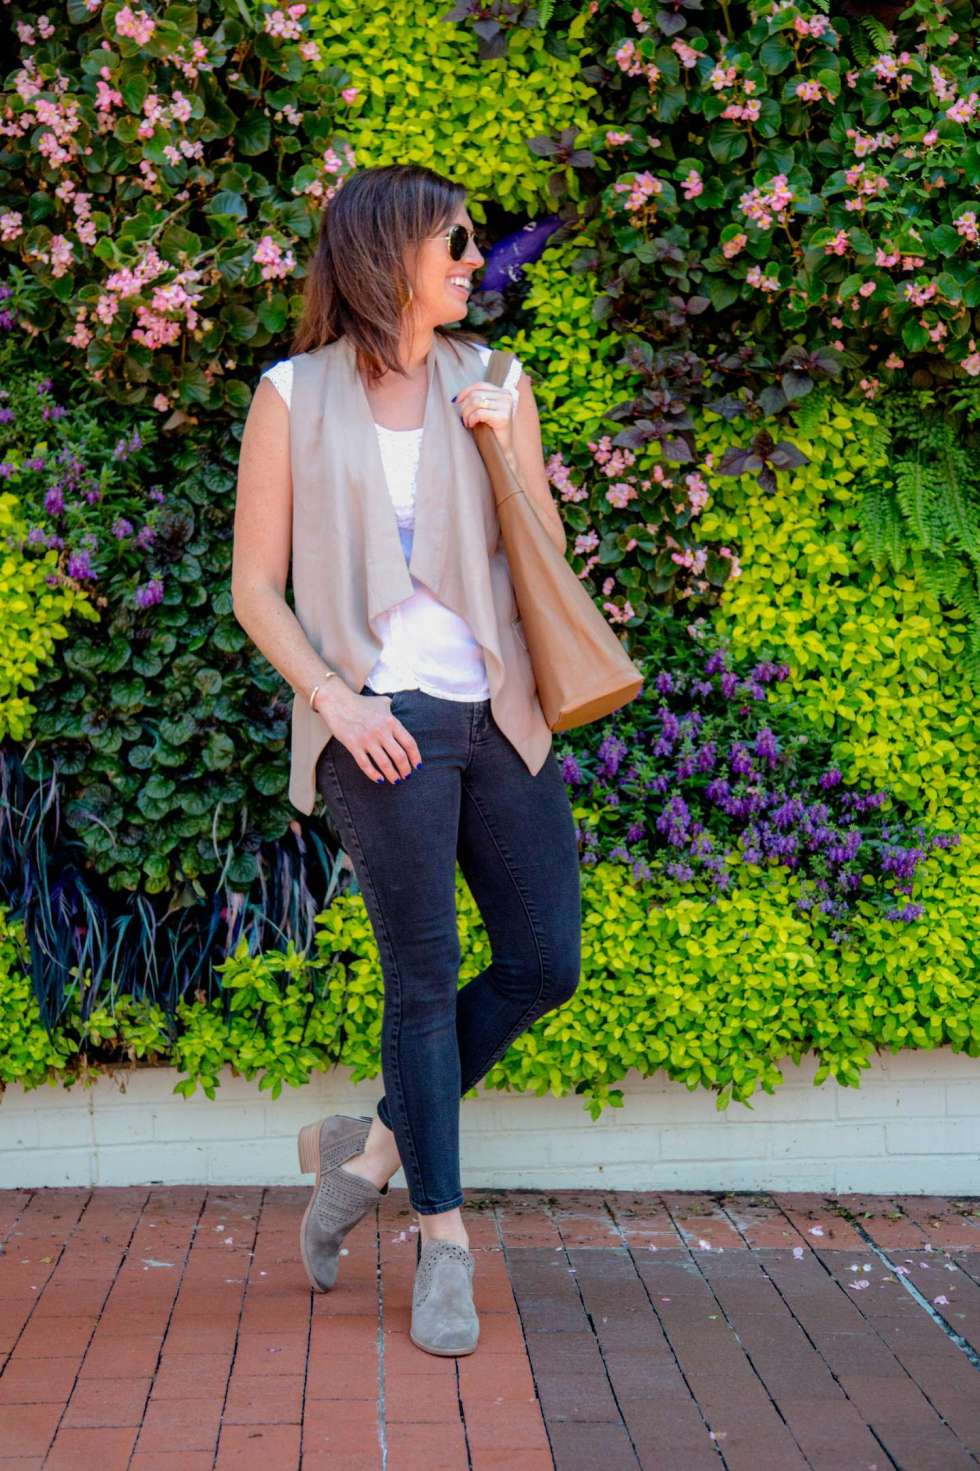 Fall Fashion Finds in Cameron Village - I'm Fixin' To - @mbg0112